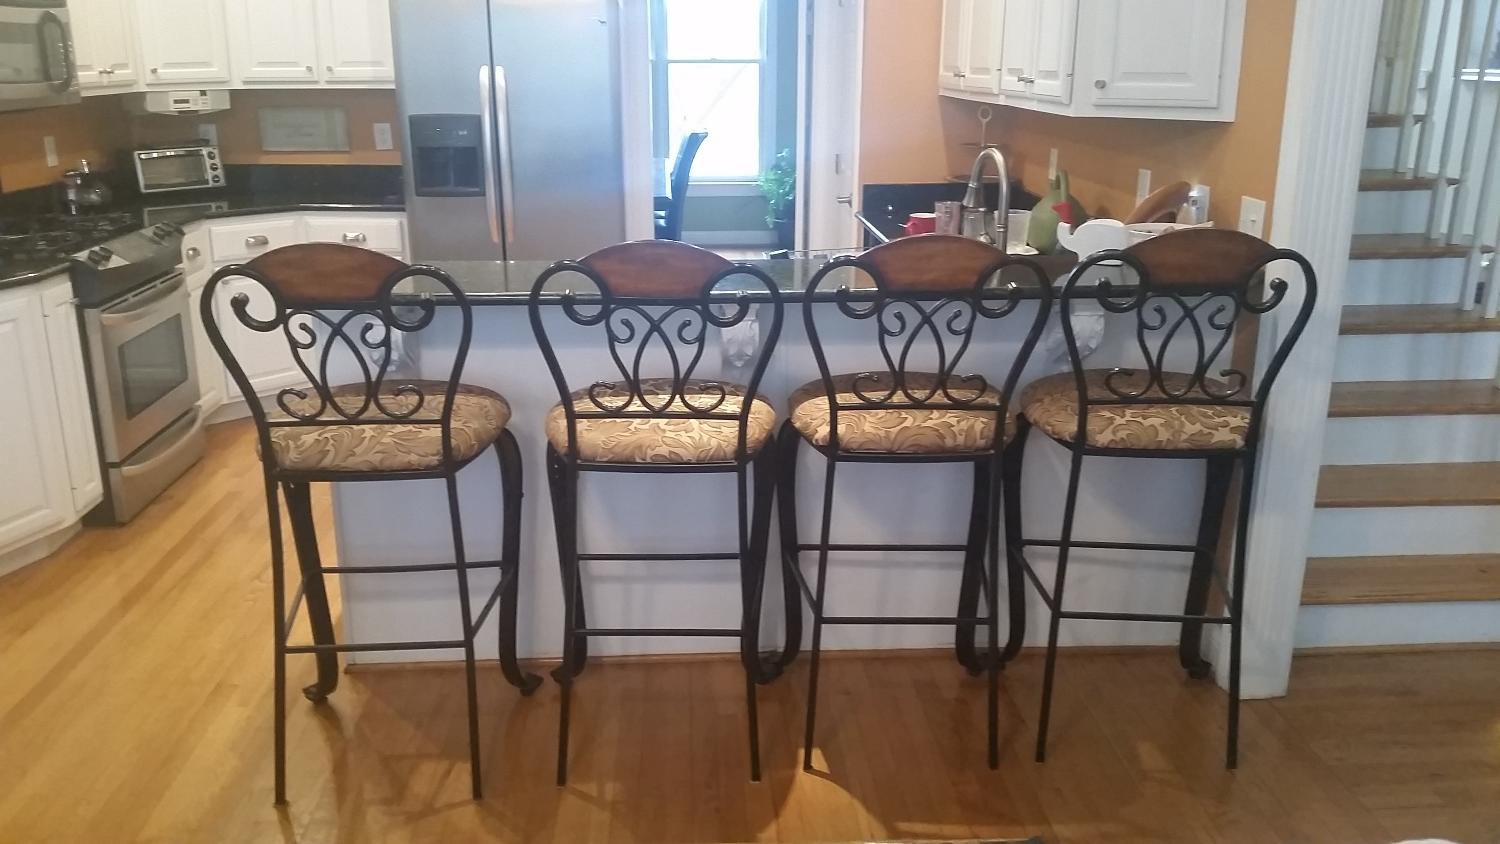 Best Comfy And Pretty Barstools What A Combo For Sale In